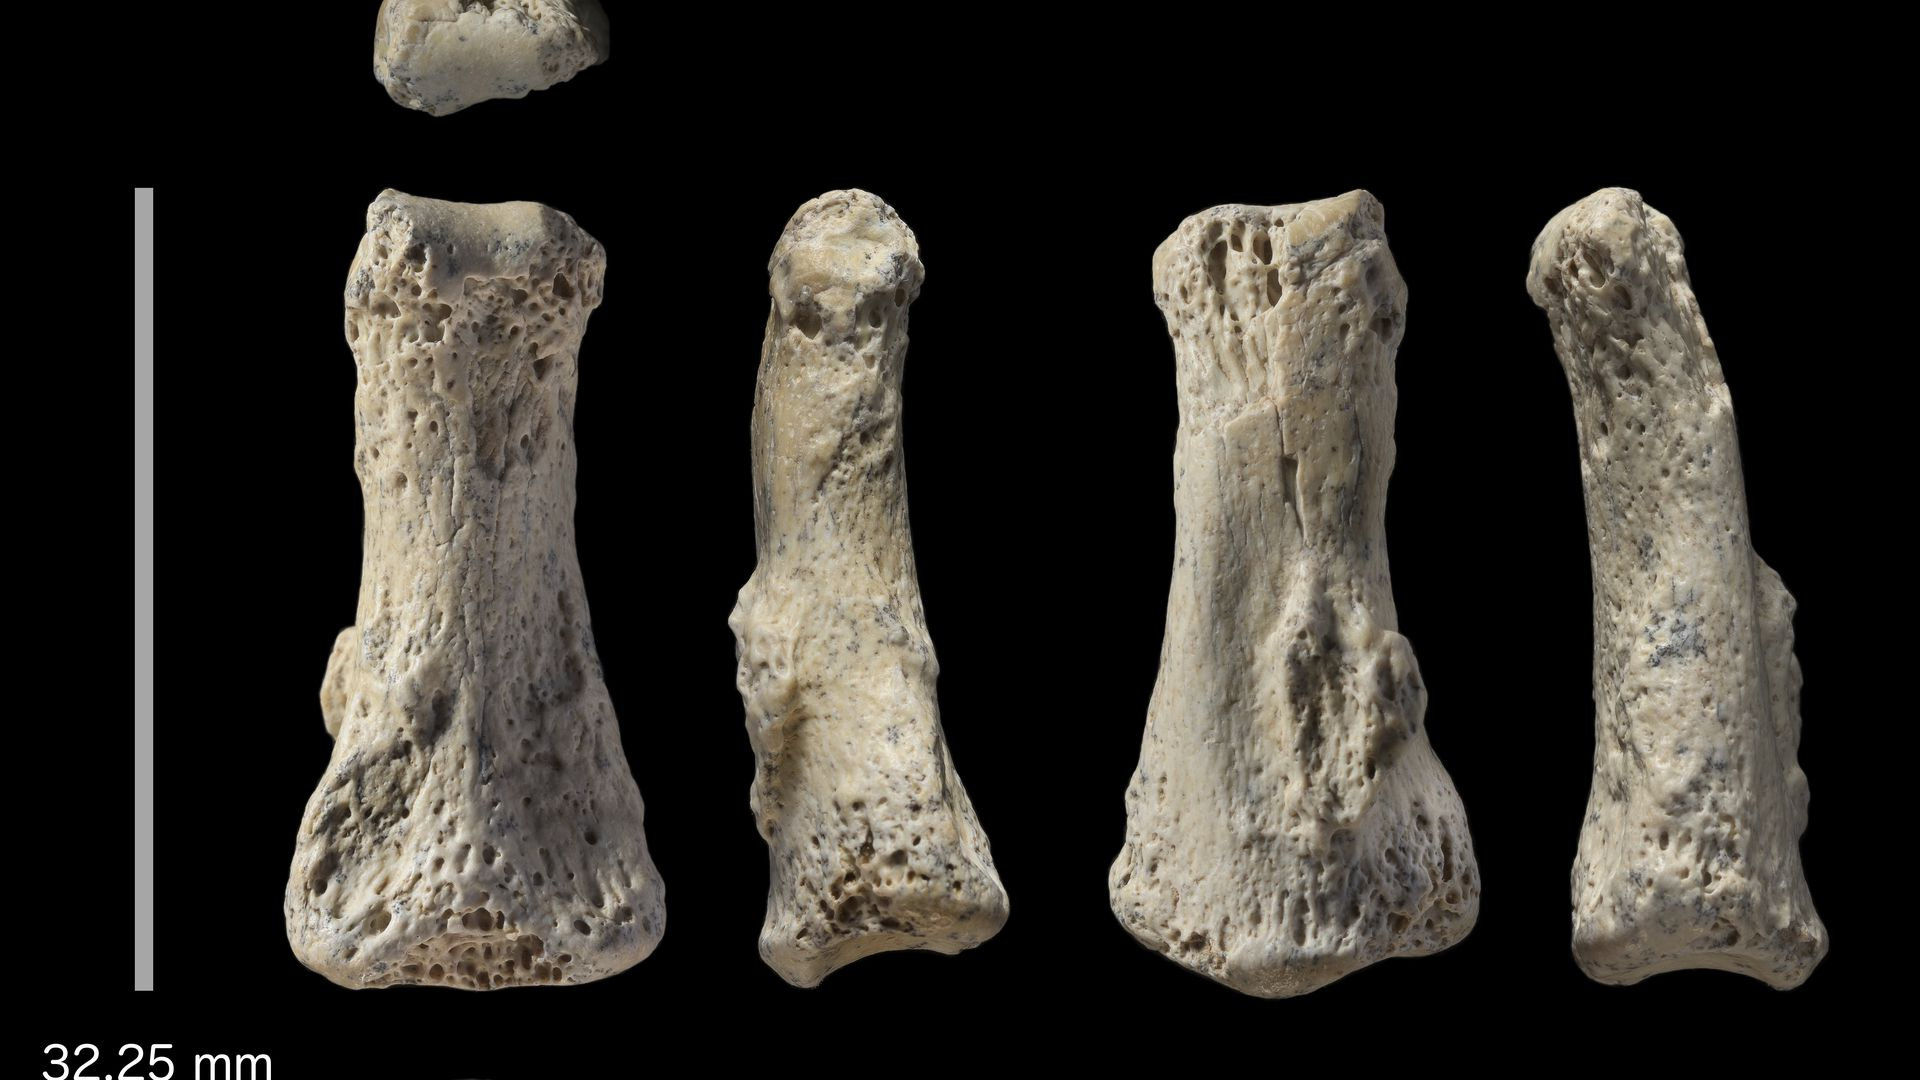 Fossil finger bone of what scientists believe is a Homo sapiens from the Al Wusta site in Saudi Arabia.